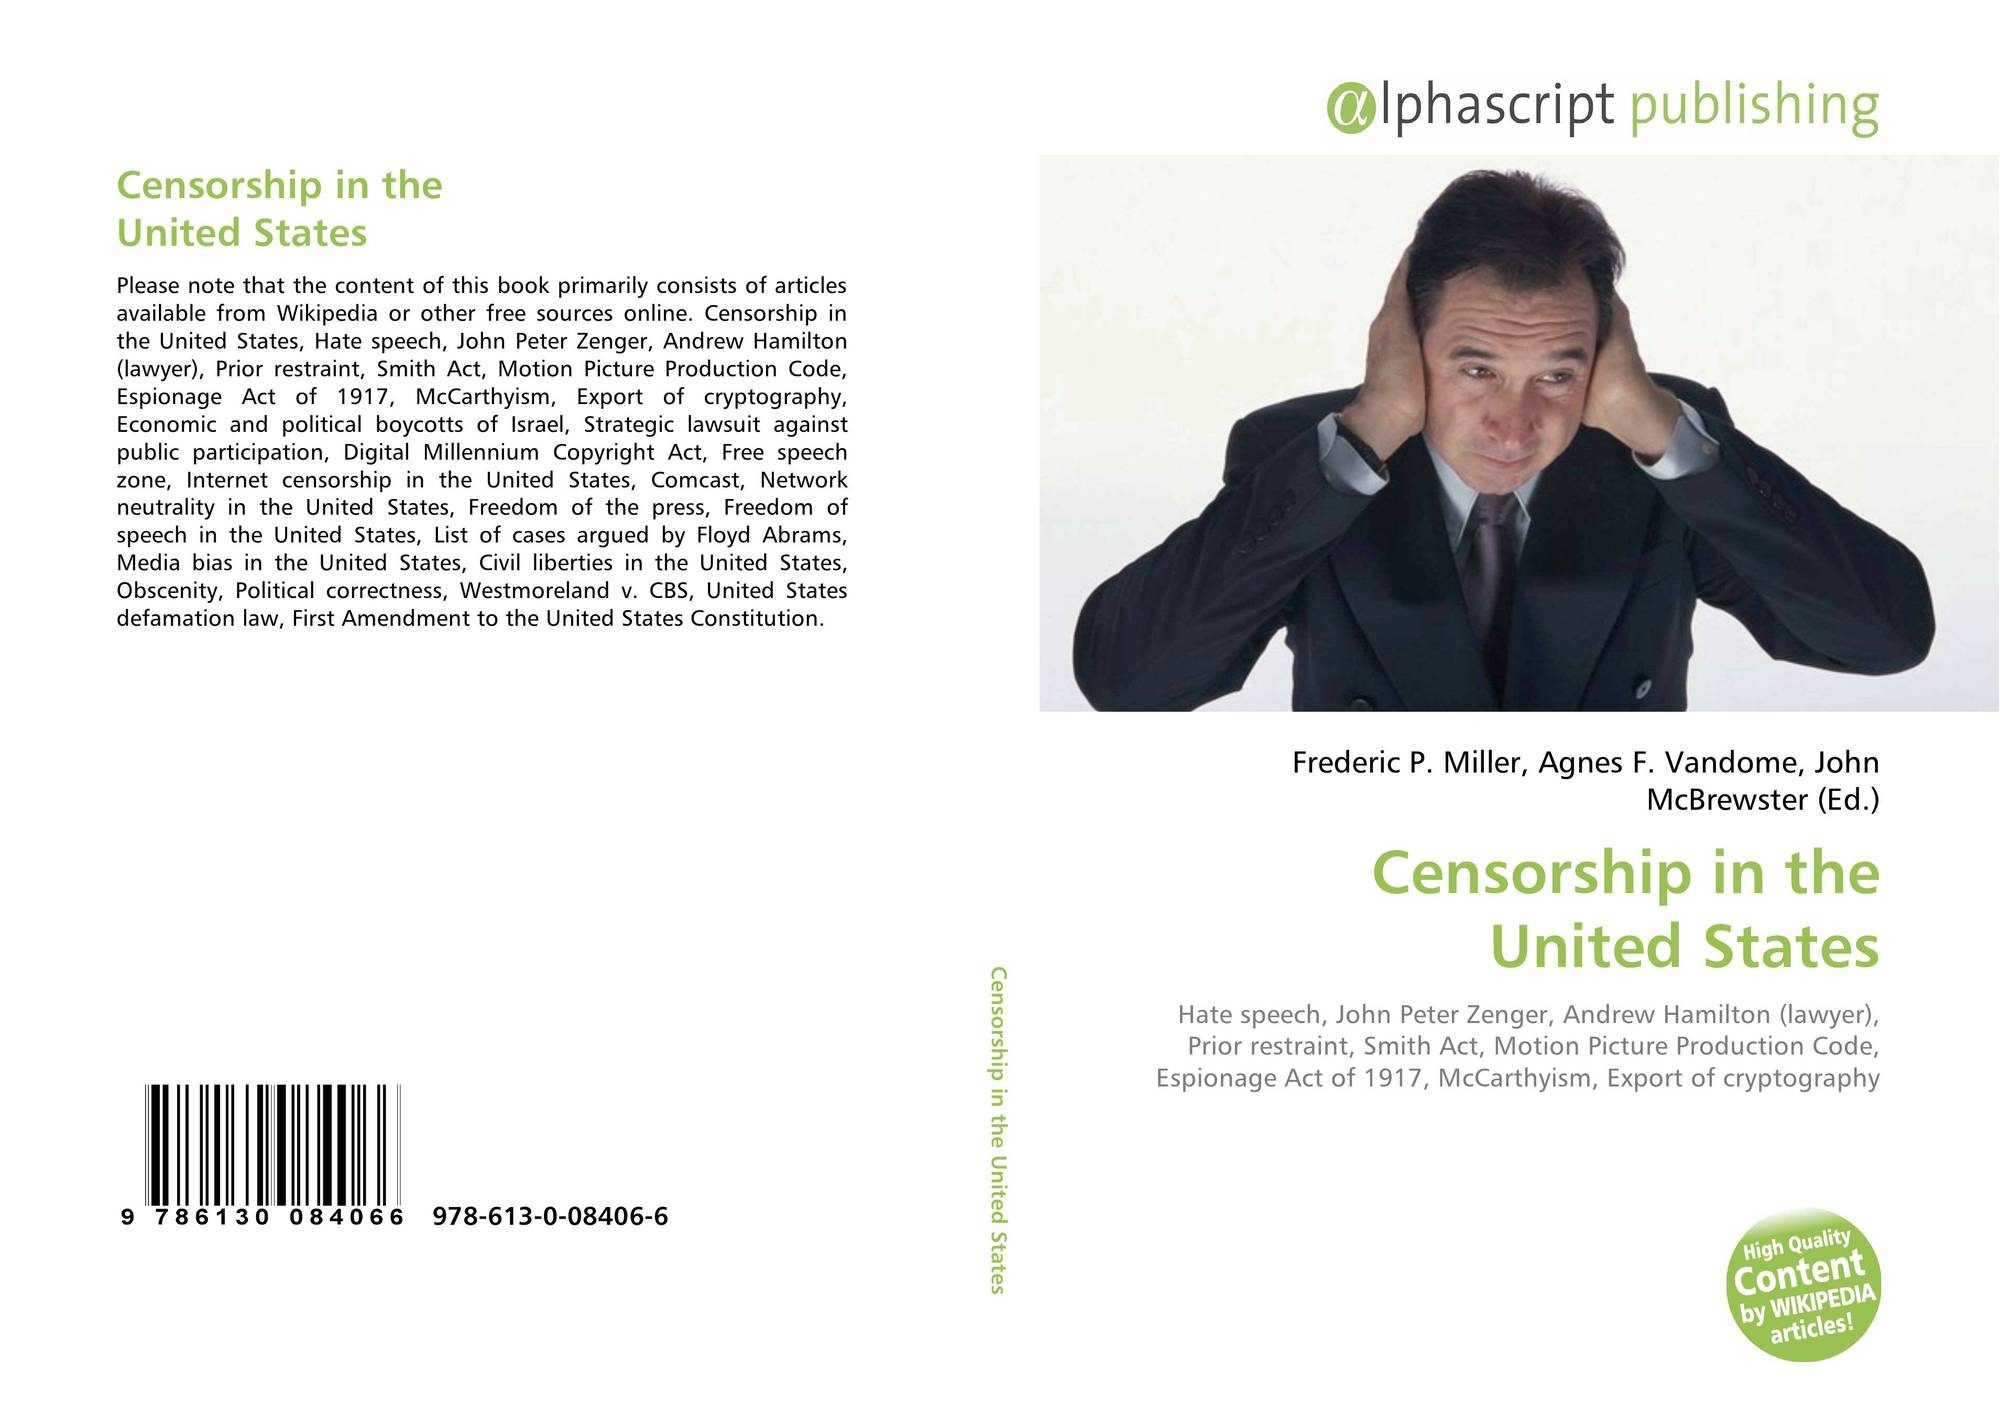 an analysis of the issue of censorship in music in the united states Music censorship essay in the united states, the issue of censorship doesn't necessarily concern music products but google swot analysis music censorship.